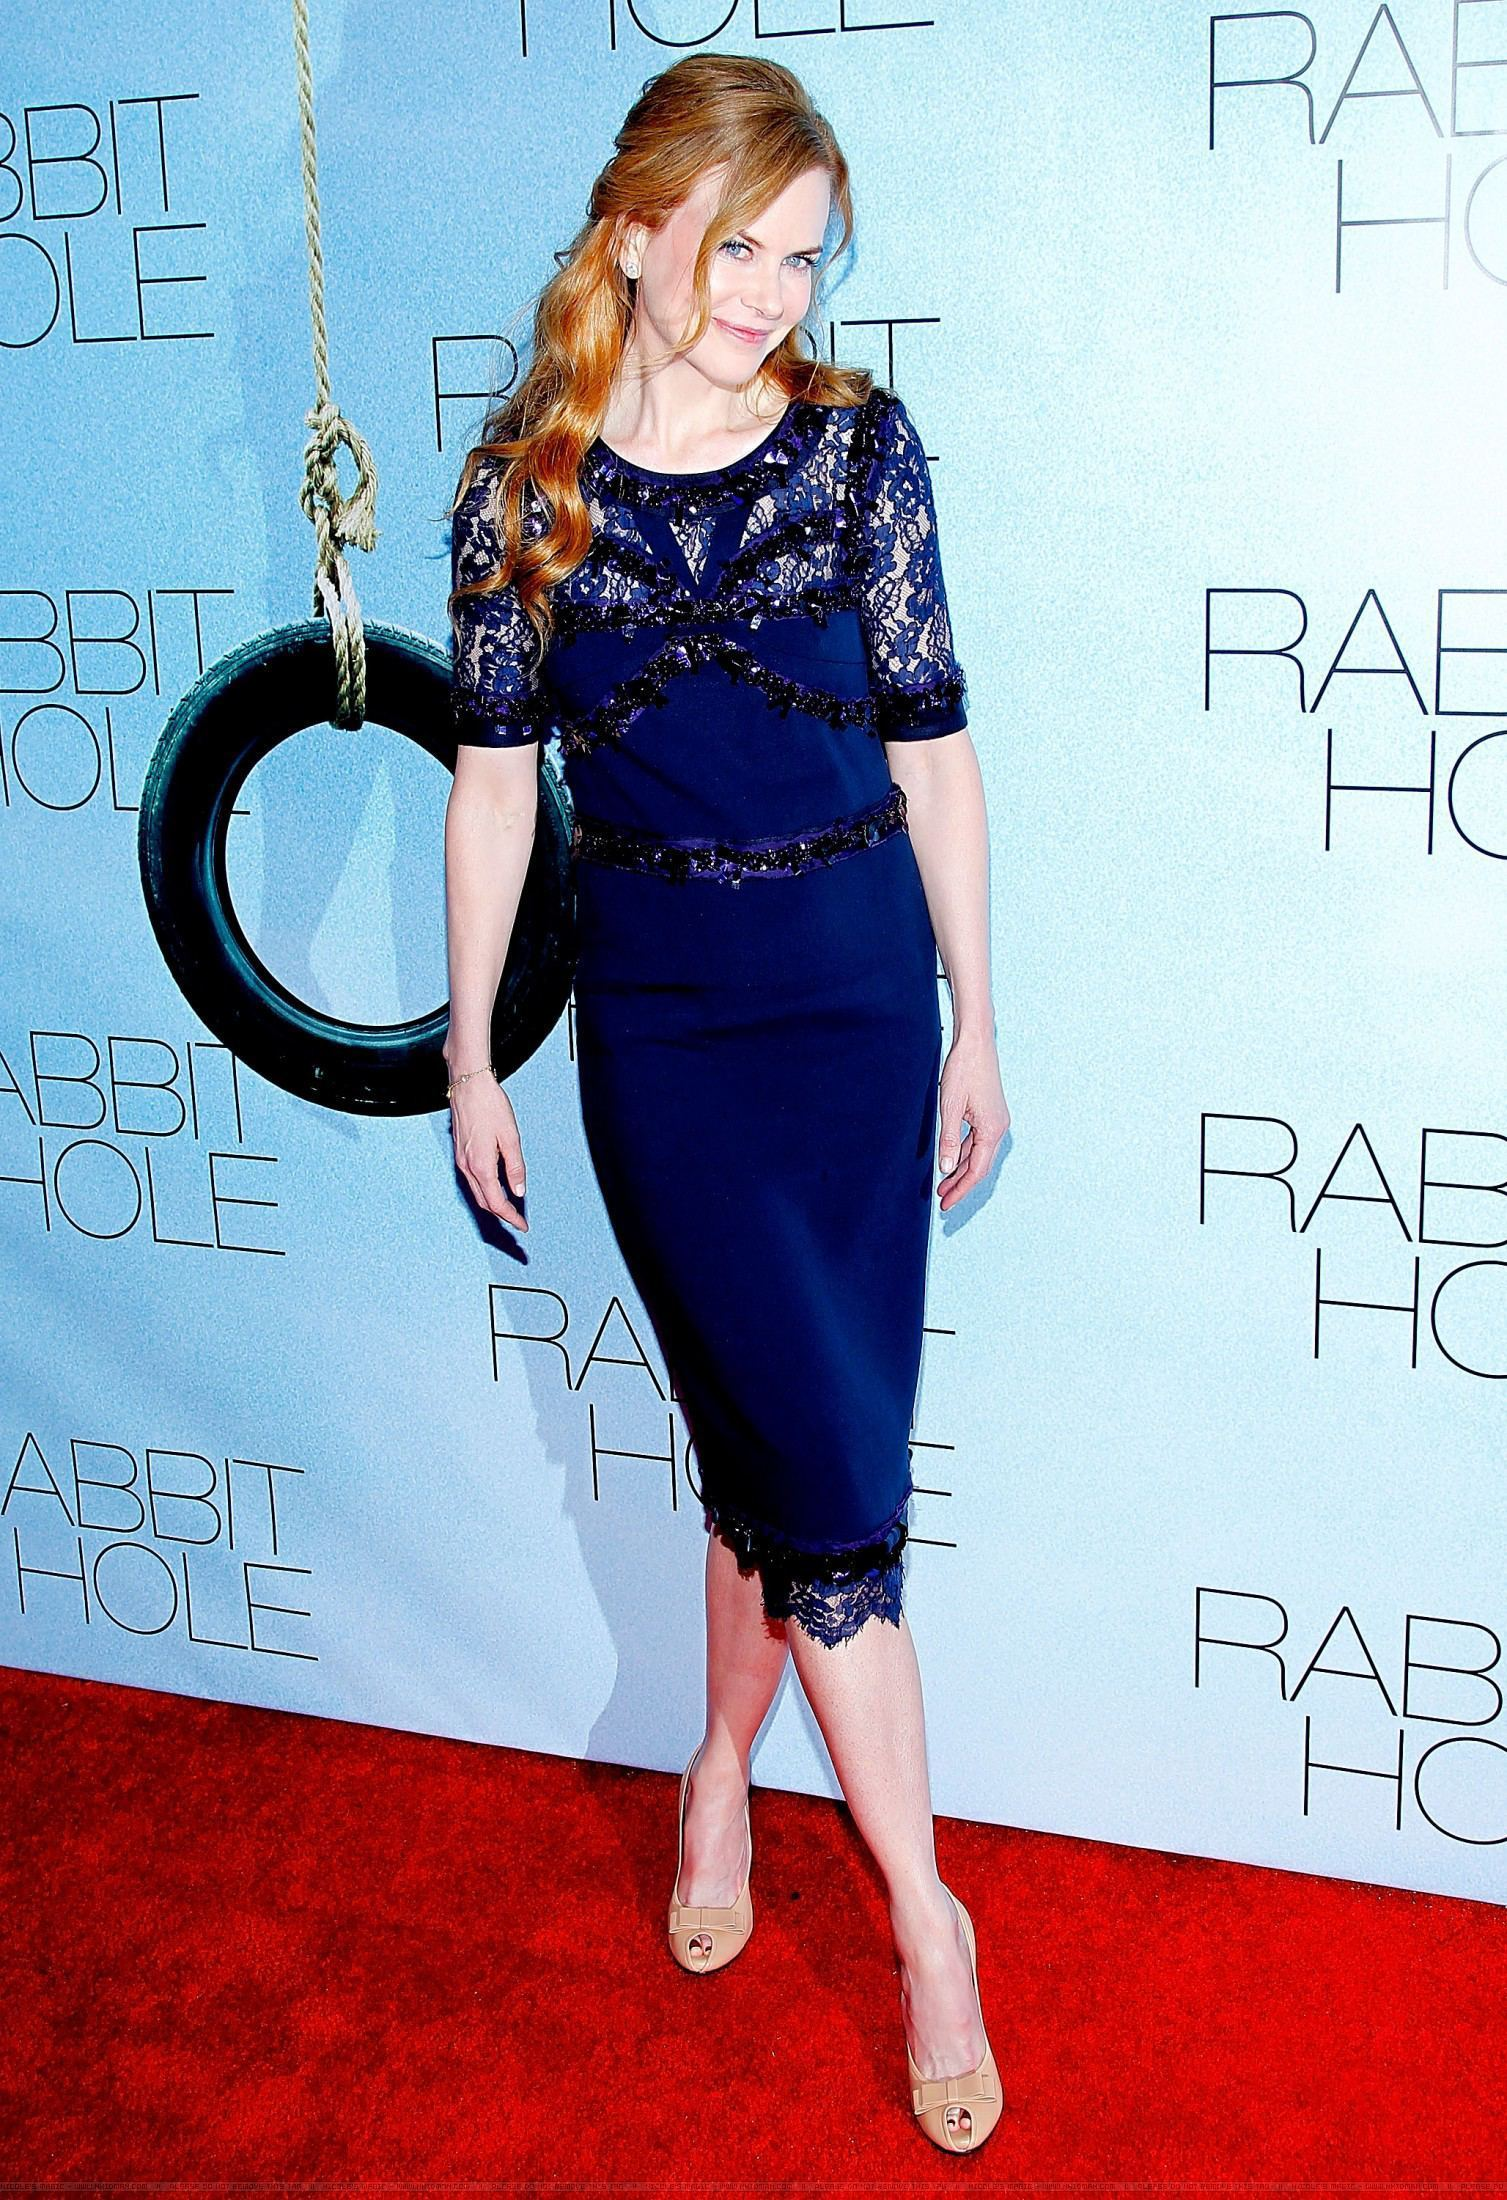 Nicole at the premiere of the Rabbit Hole in New York